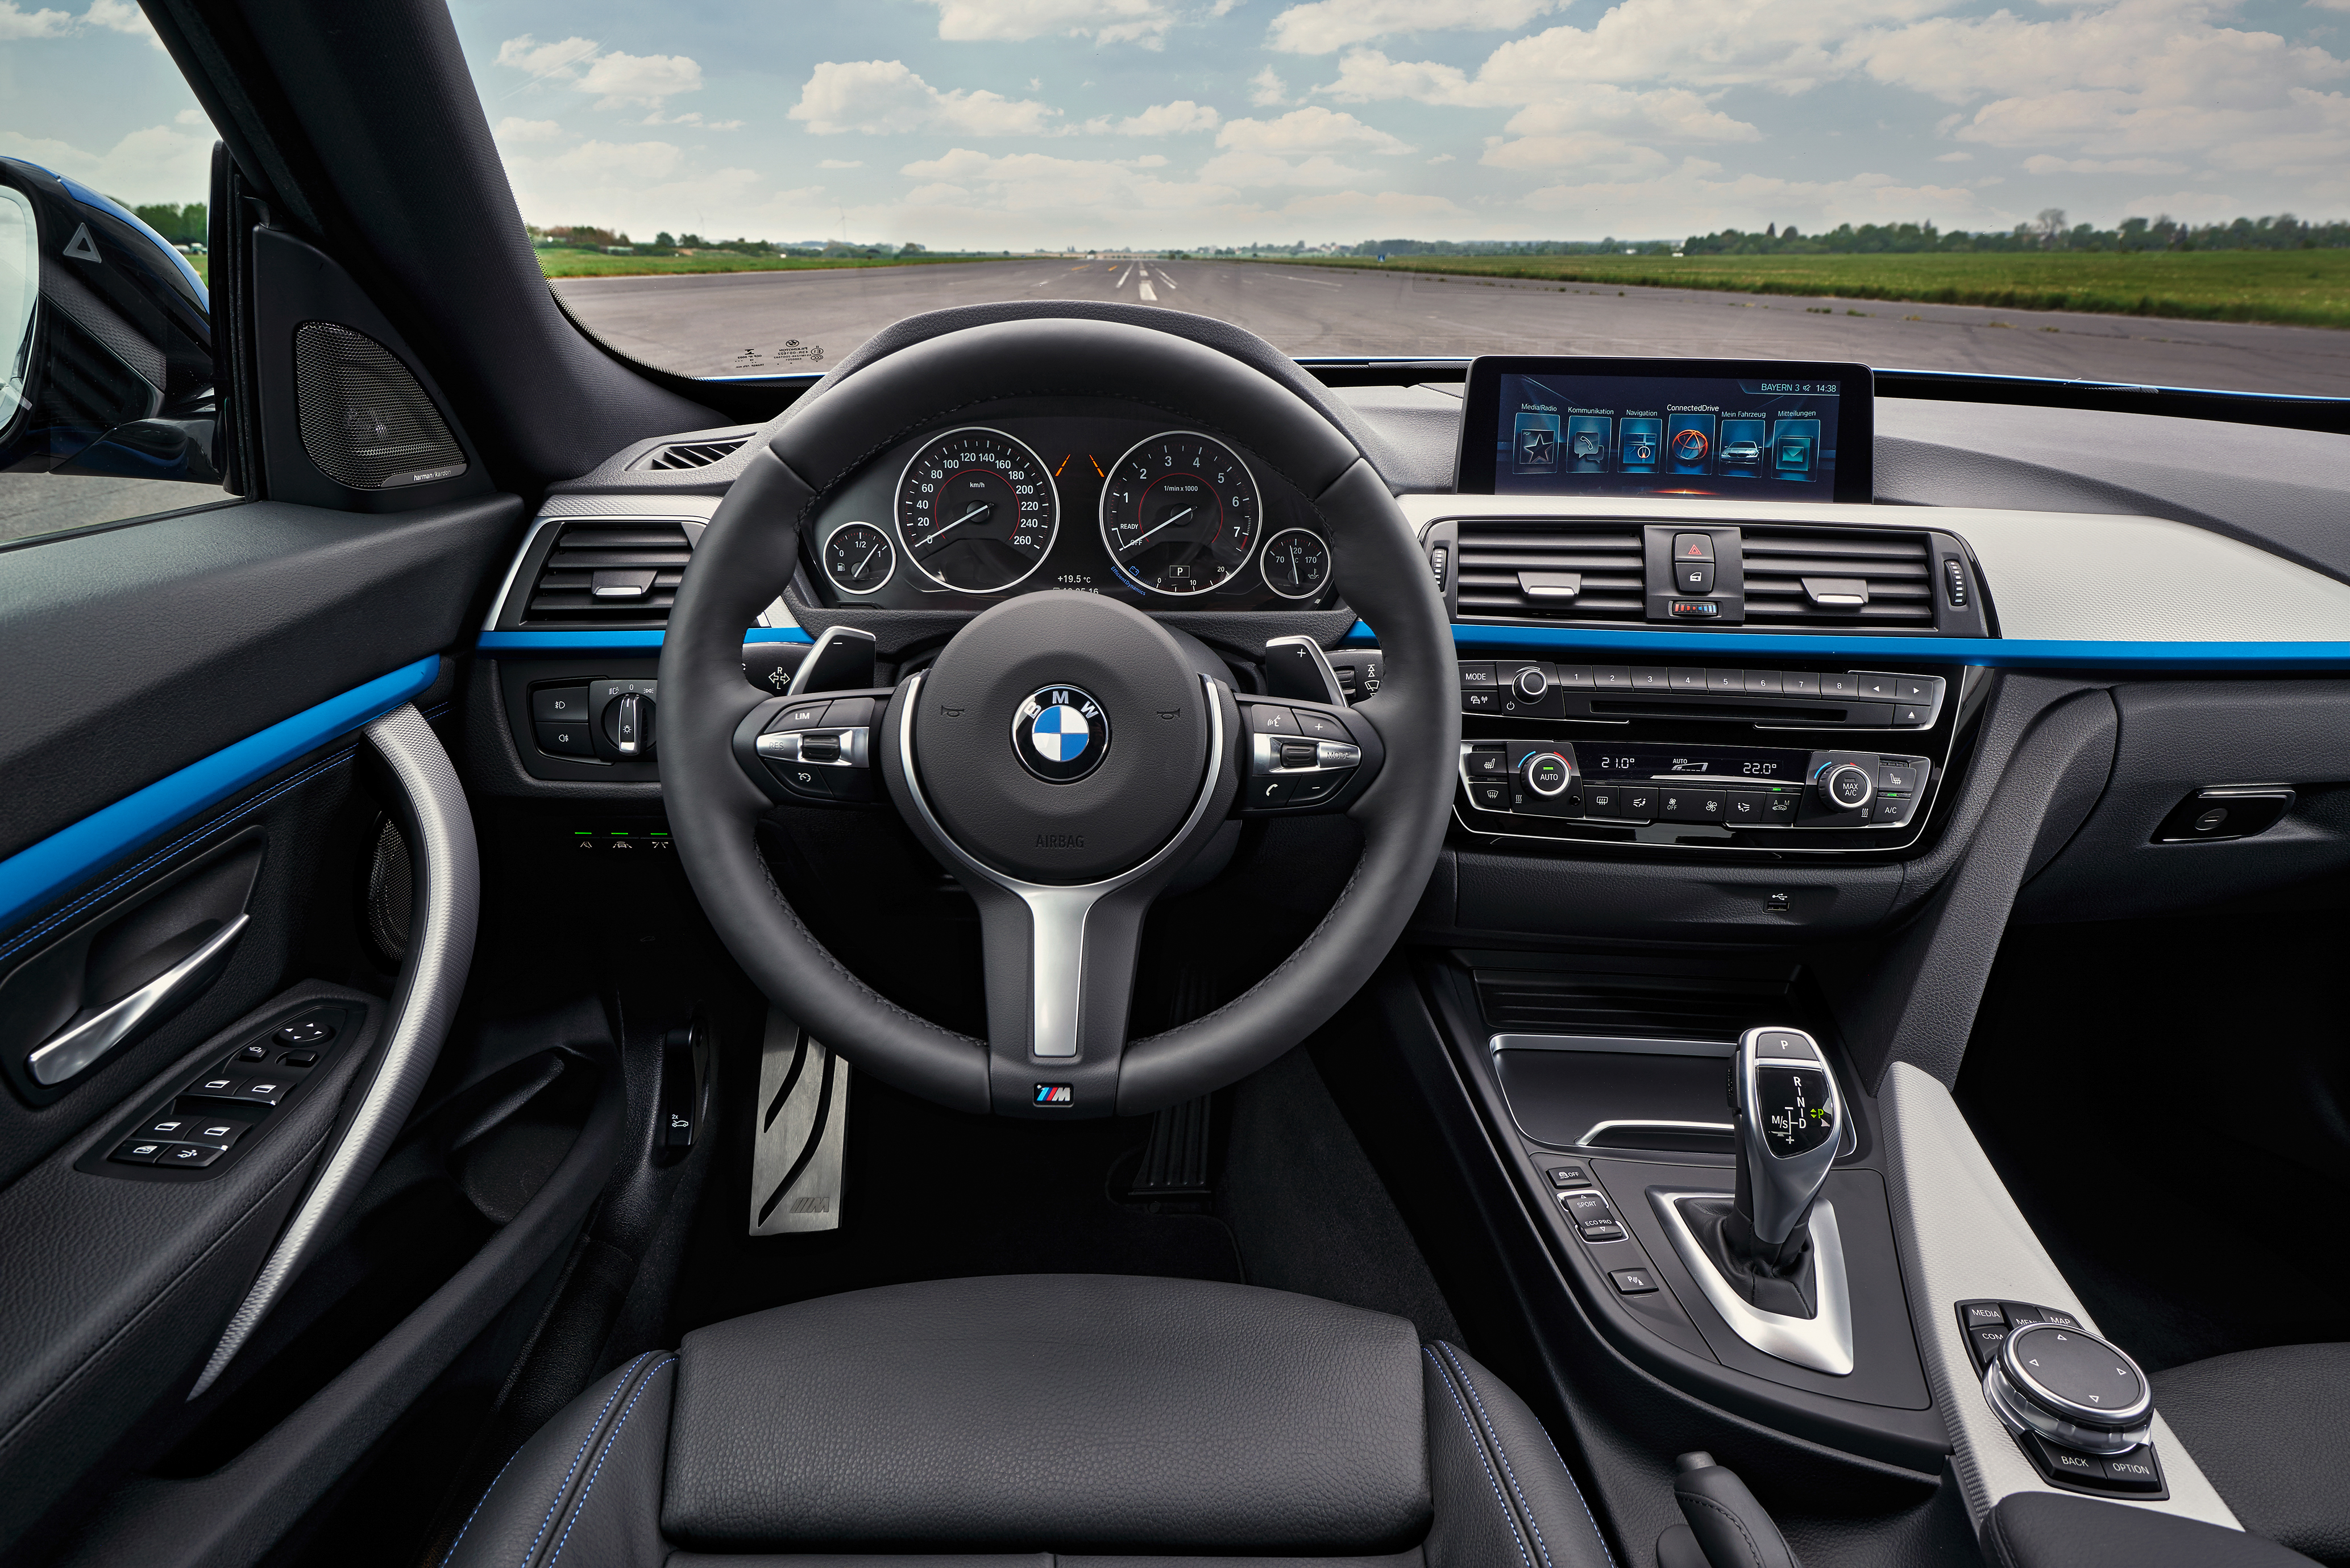 F34 Bmw 3 Series Gt Lci Facelift New Looks And Kit Paul